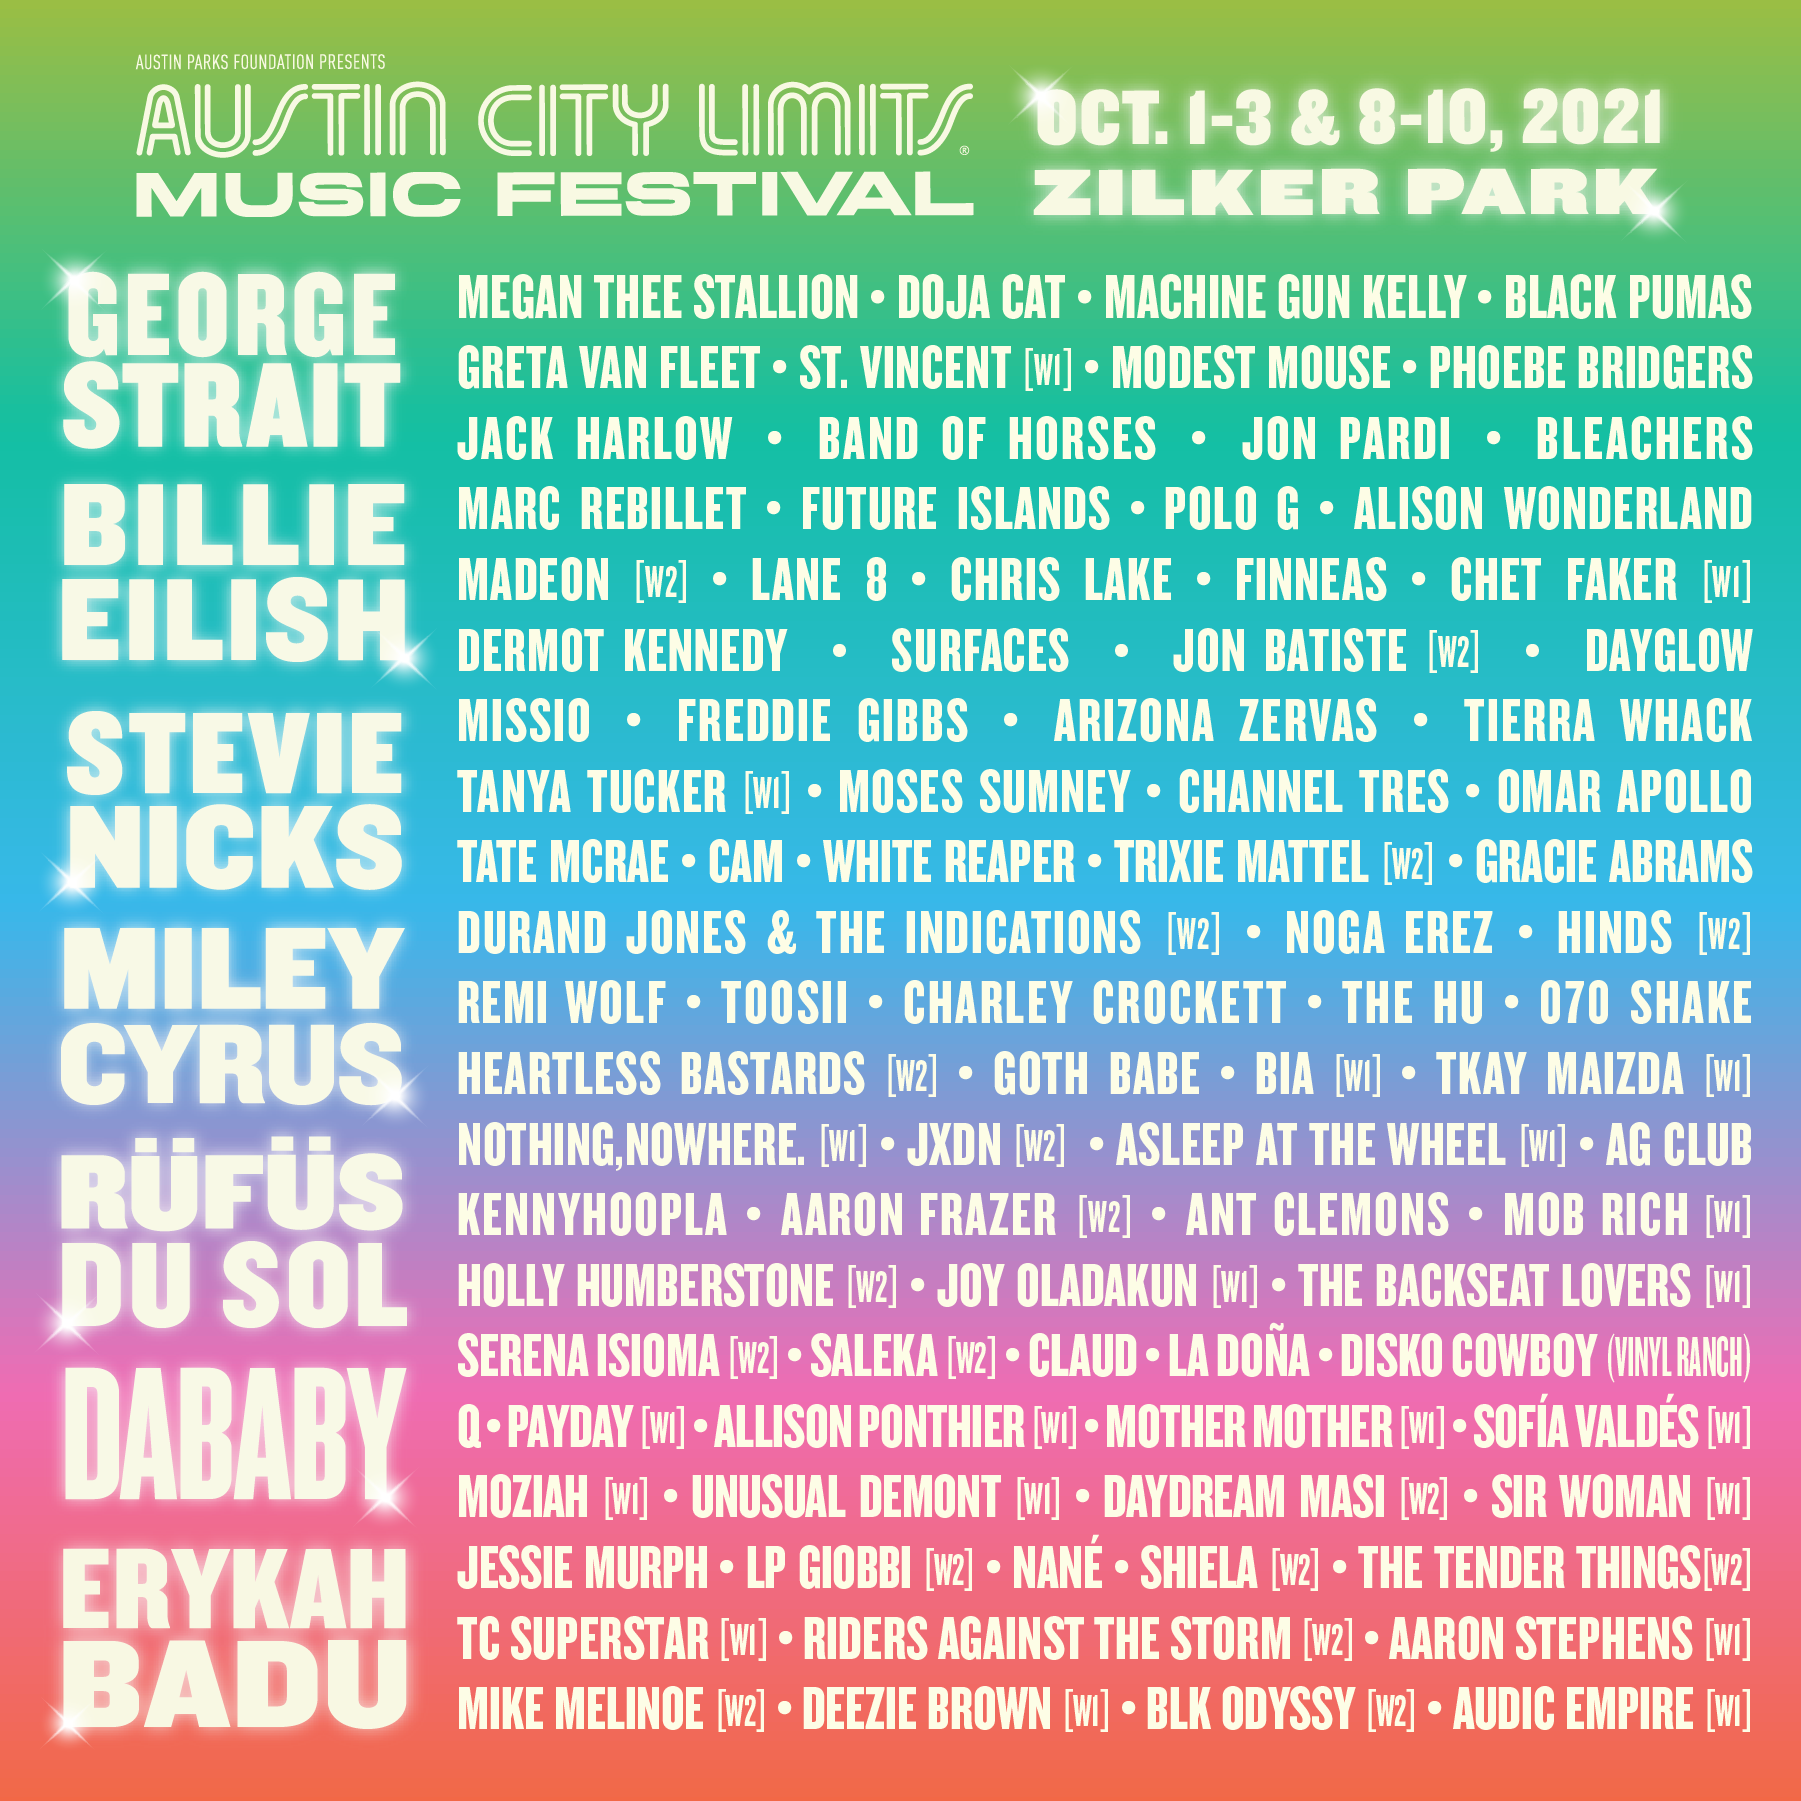 acl music festival lineup 2021